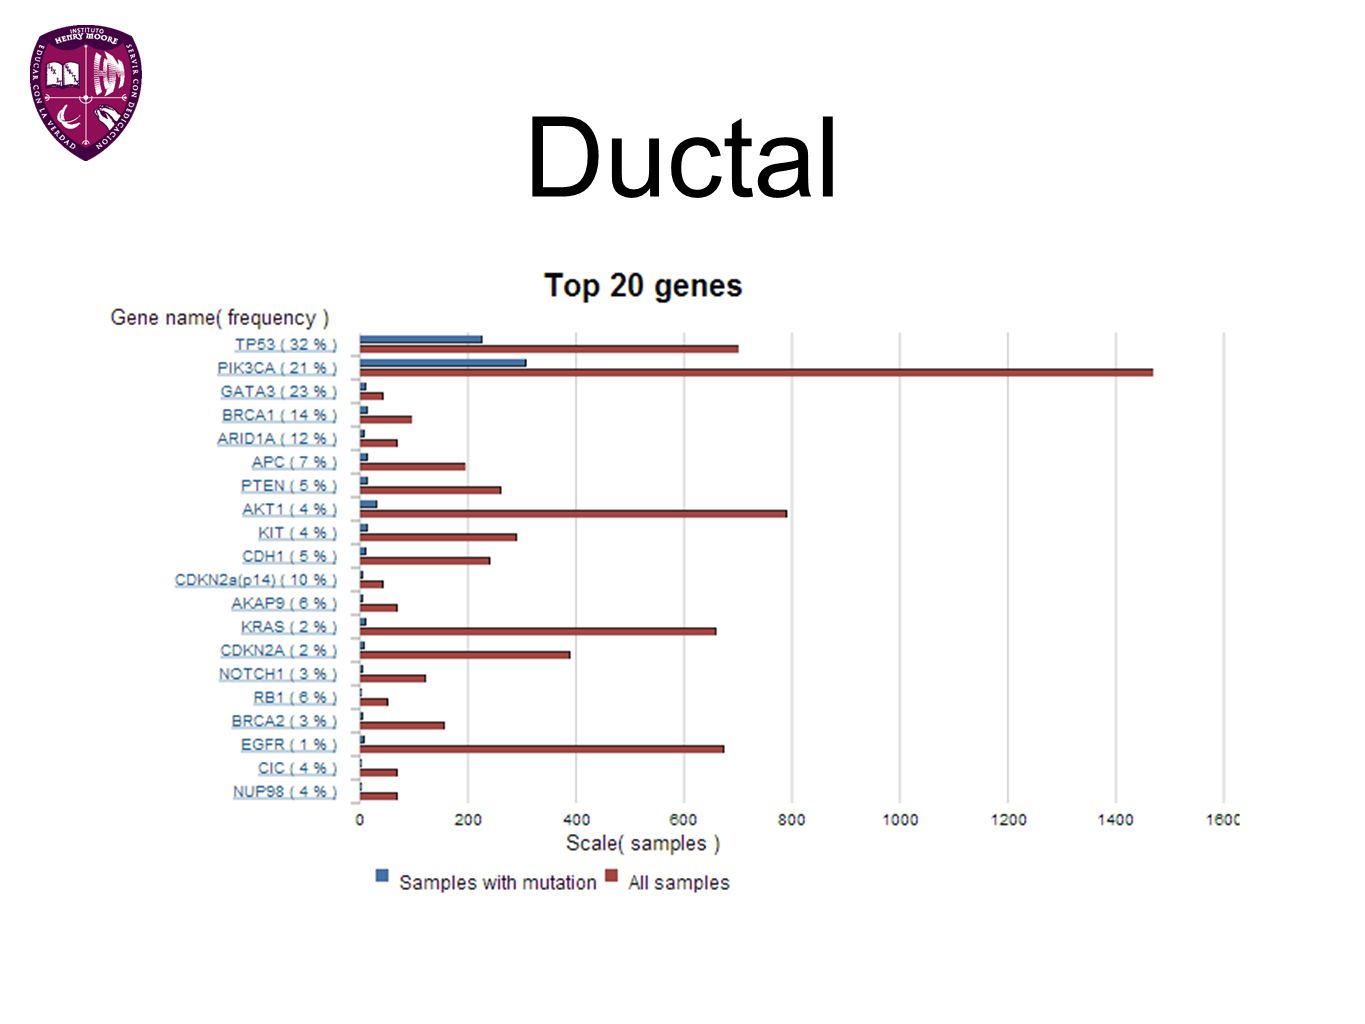 Ductal